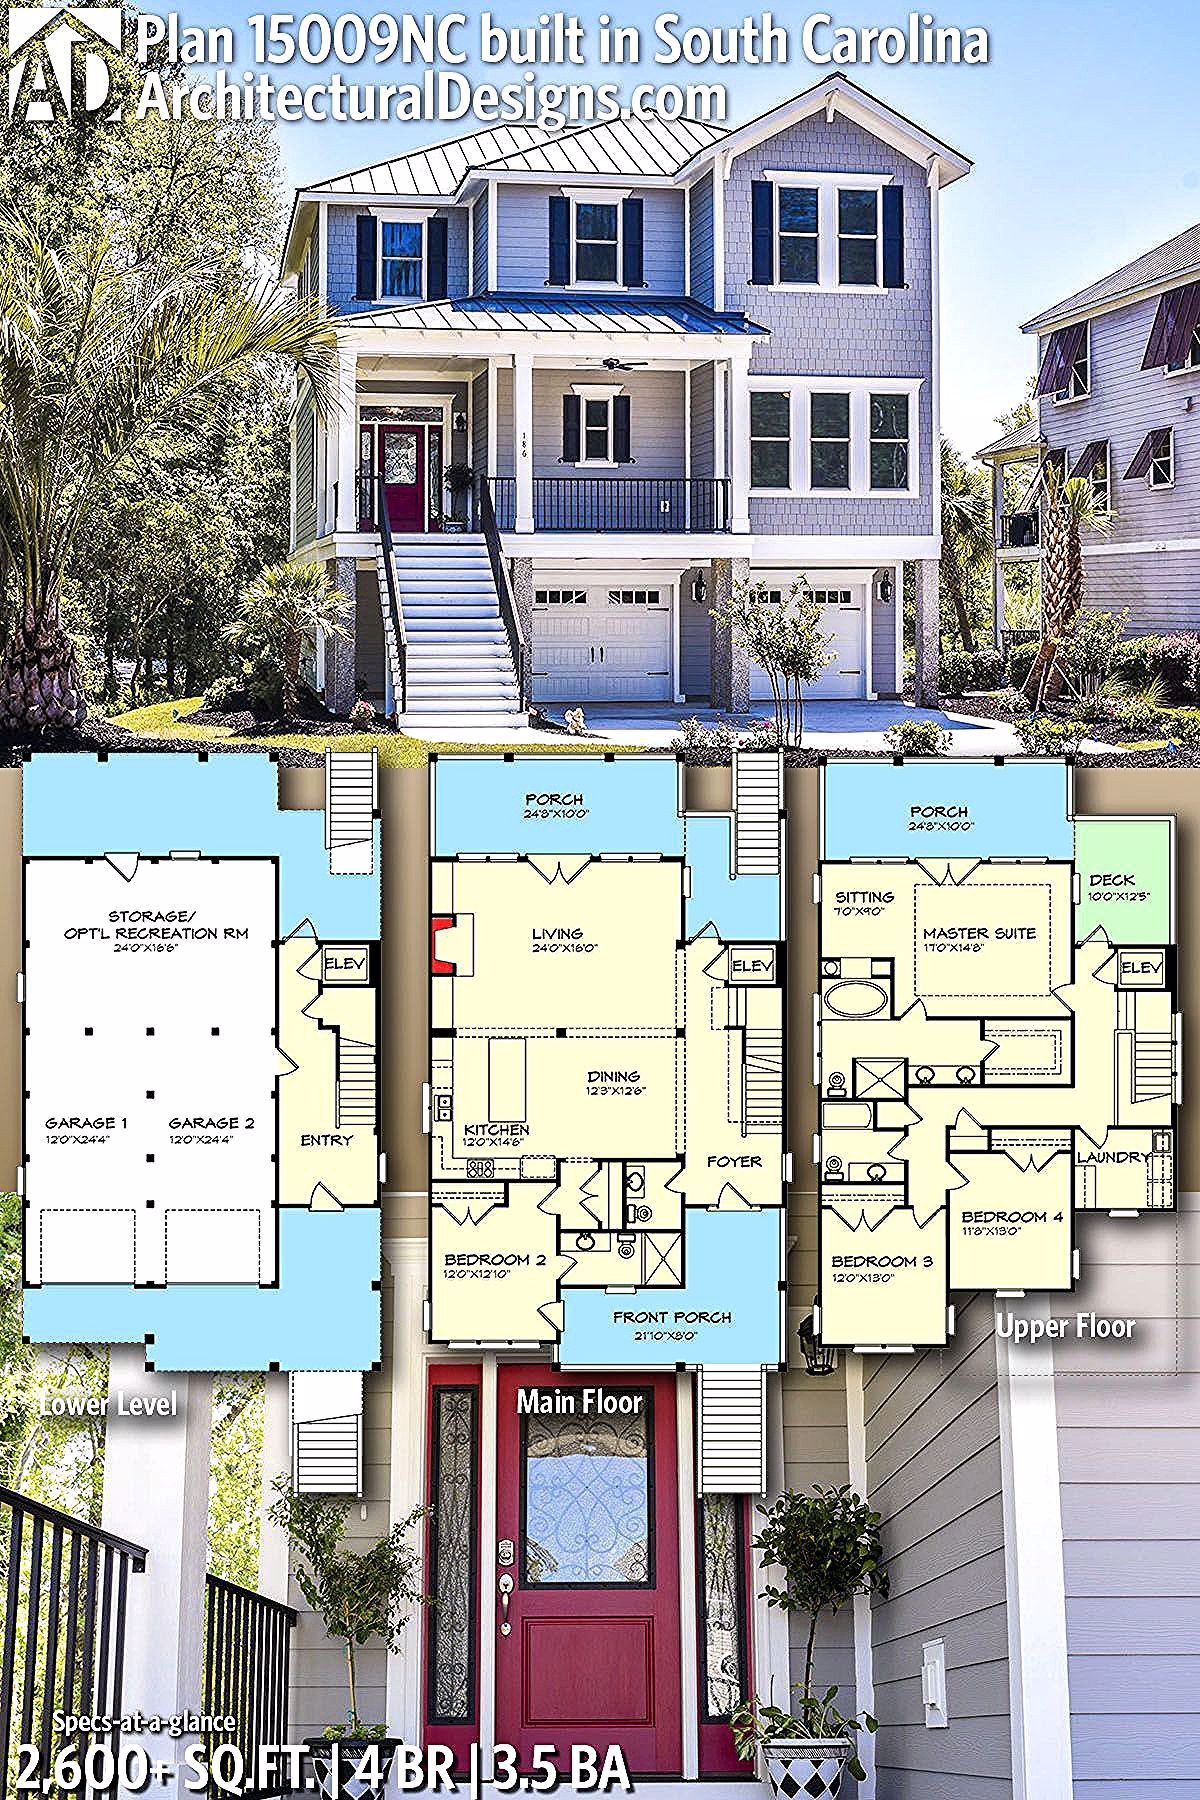 Architectural Designs House Plan 15009nc Built By Our Friends In South Carolina 4br 3 5ba 2 Coastal House Plans Beach House Floor Plans Beach House Plans